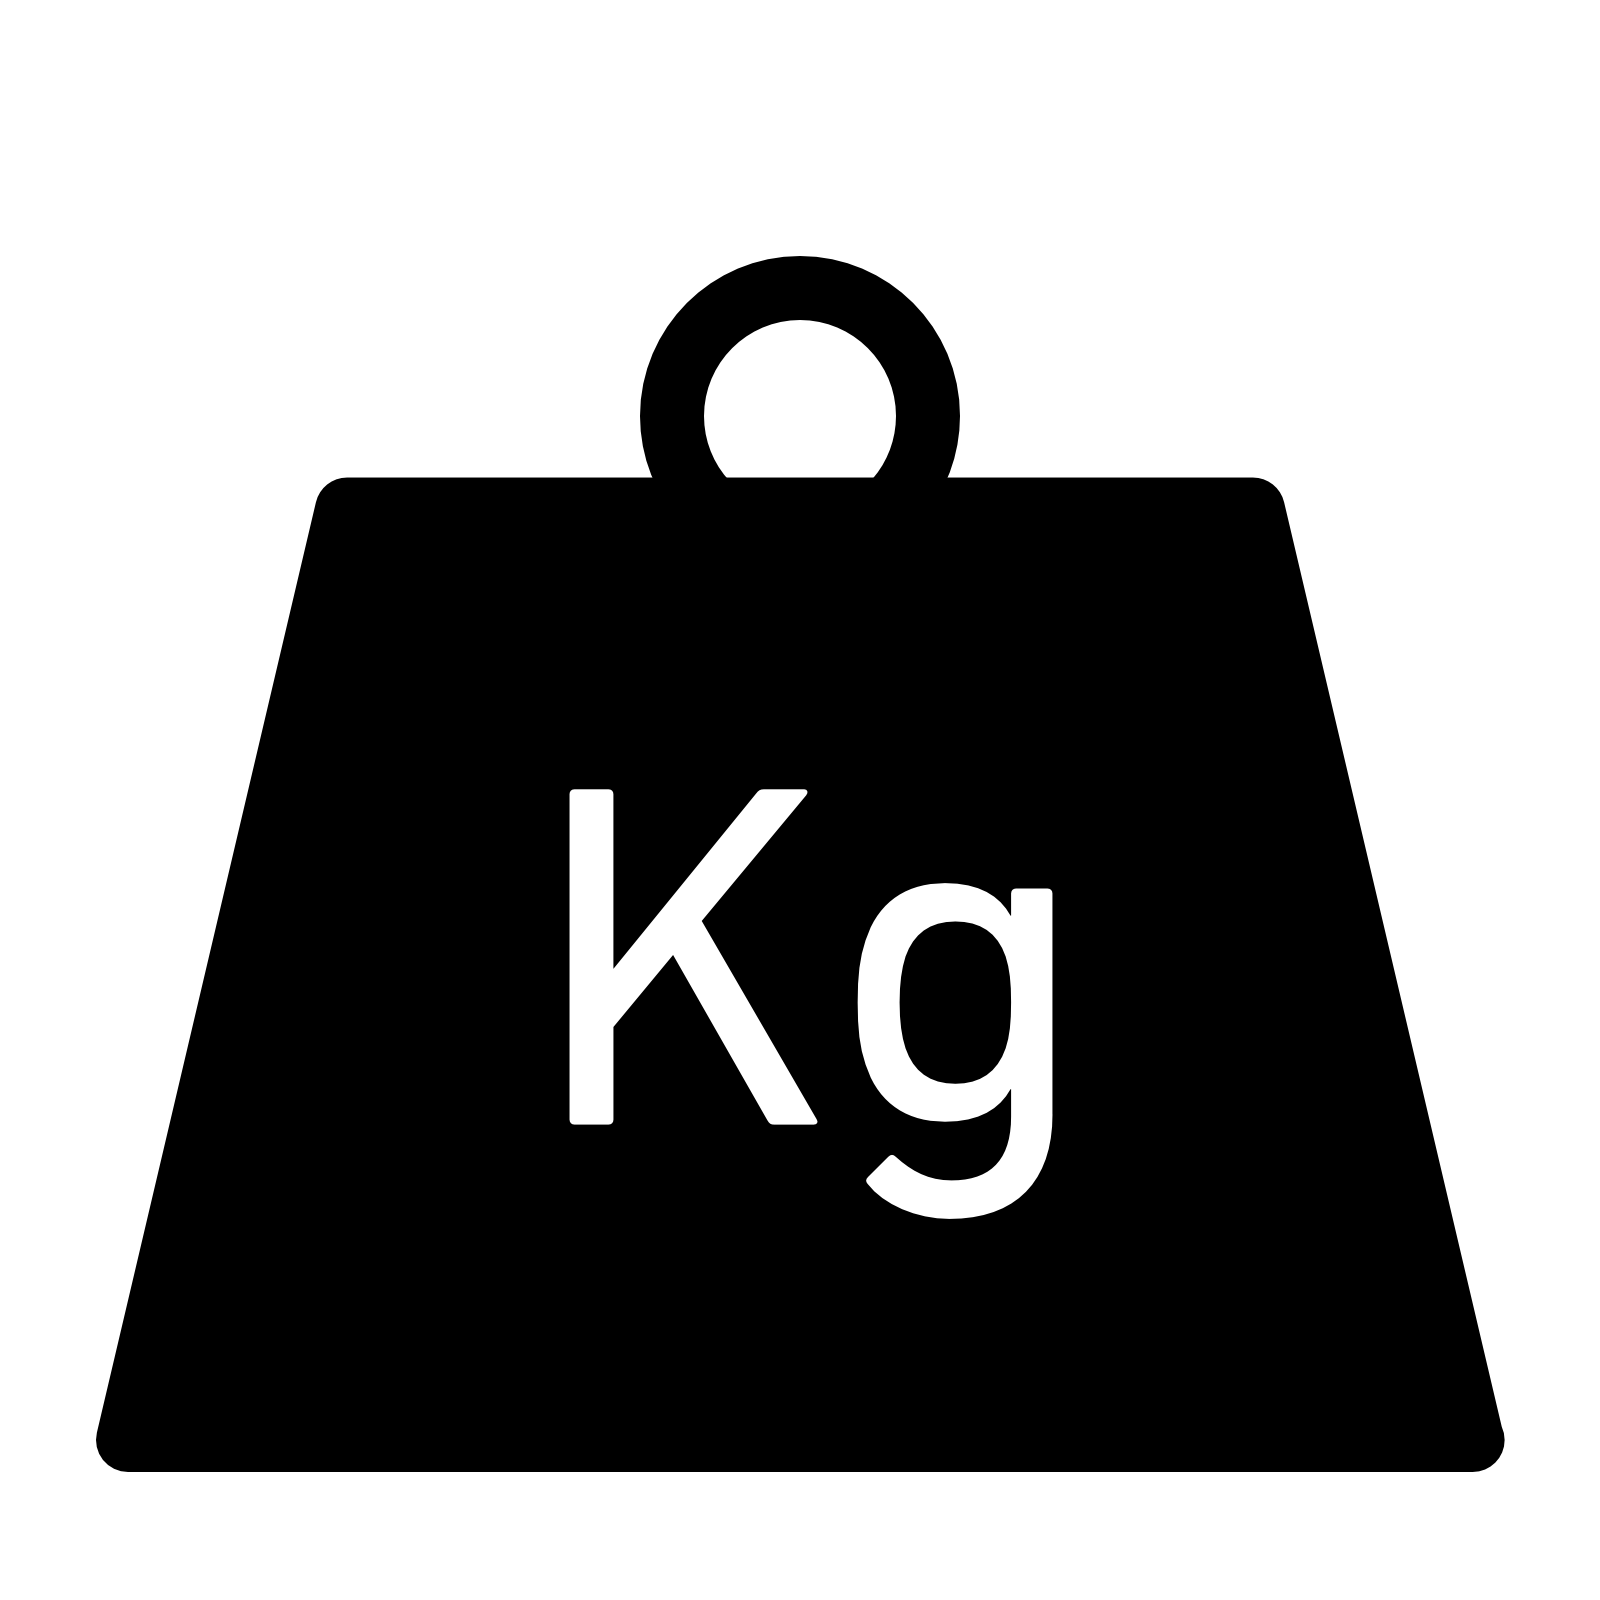 Weight Filled icon - Ton Weight PNG